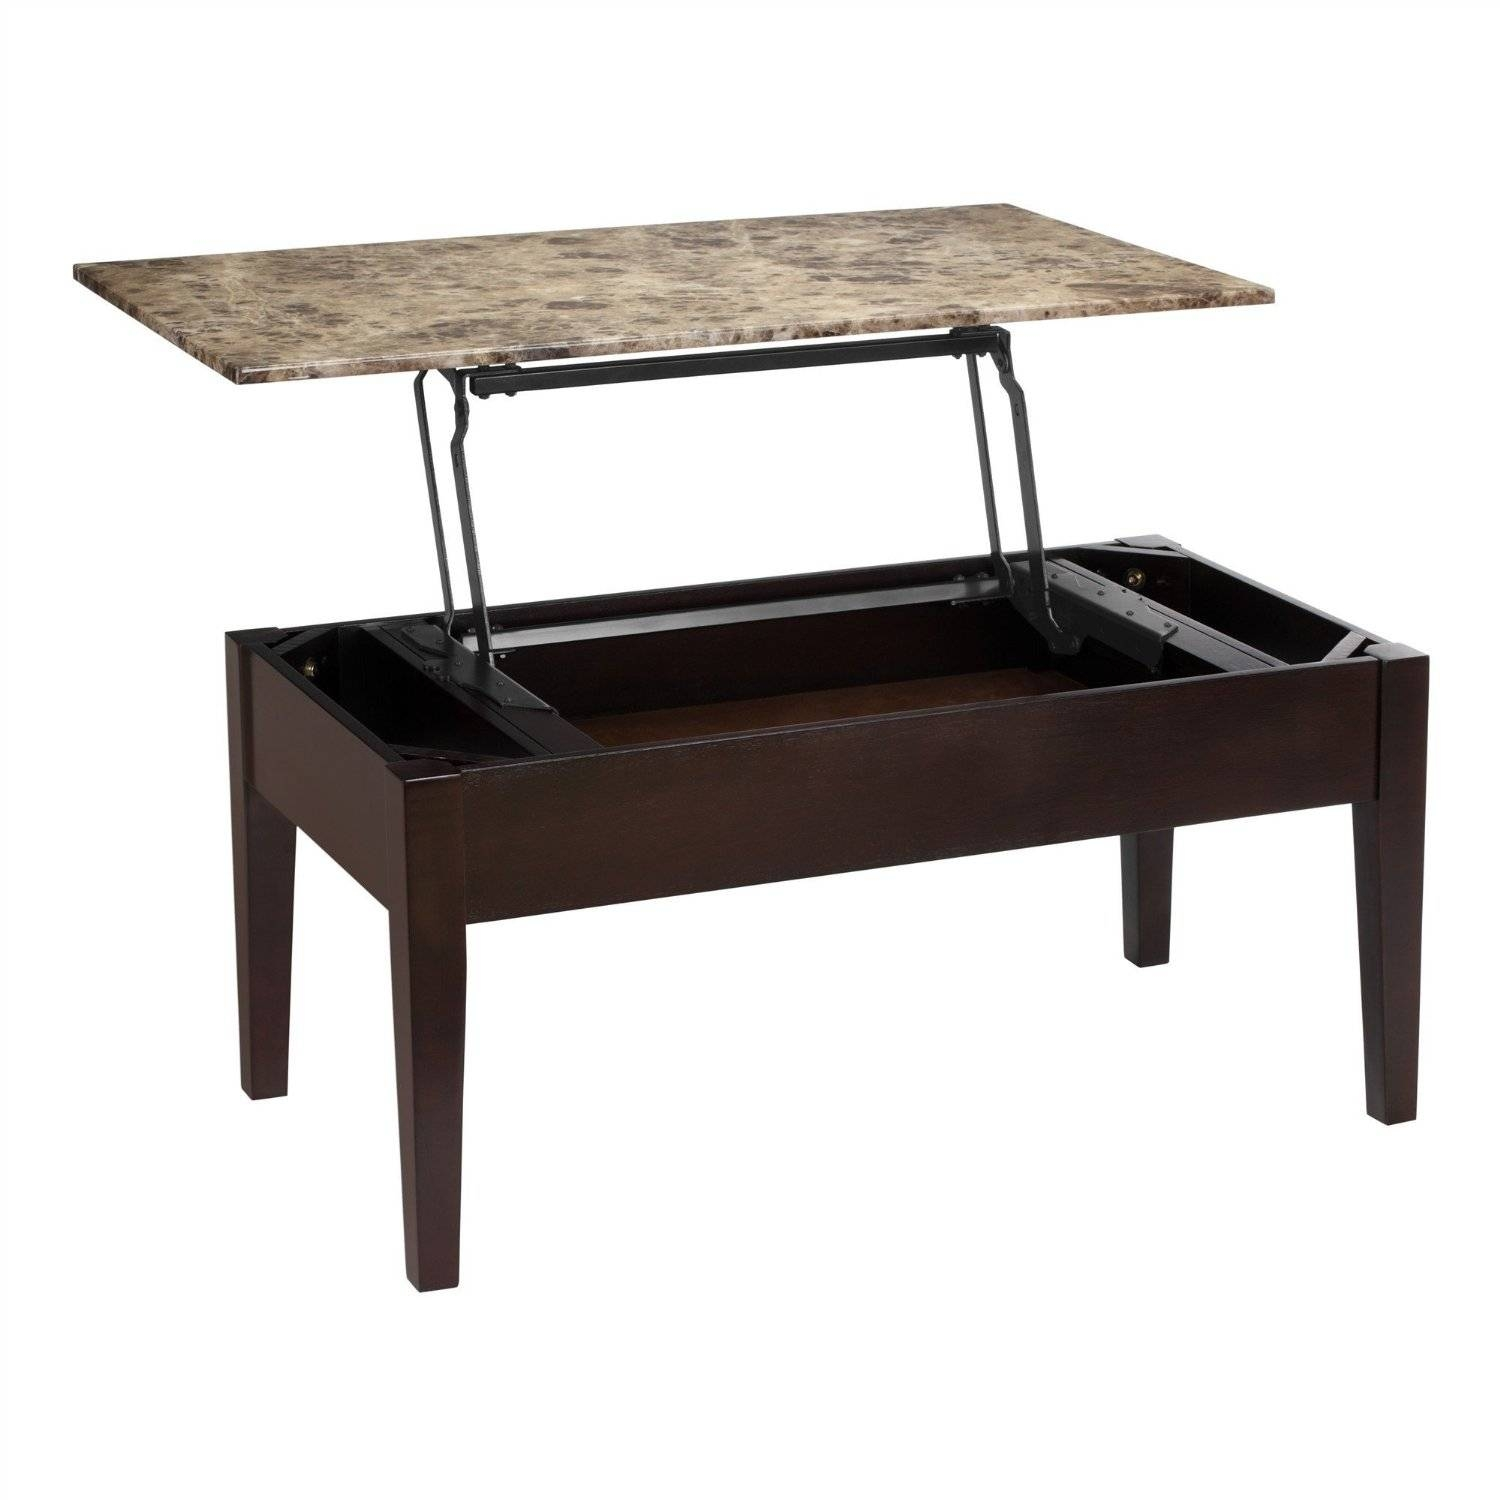 Modway Rectangle Metal And Glass Coffee Table With Lift Top with Glass Lift Top Coffee Tables (Image 18 of 30)